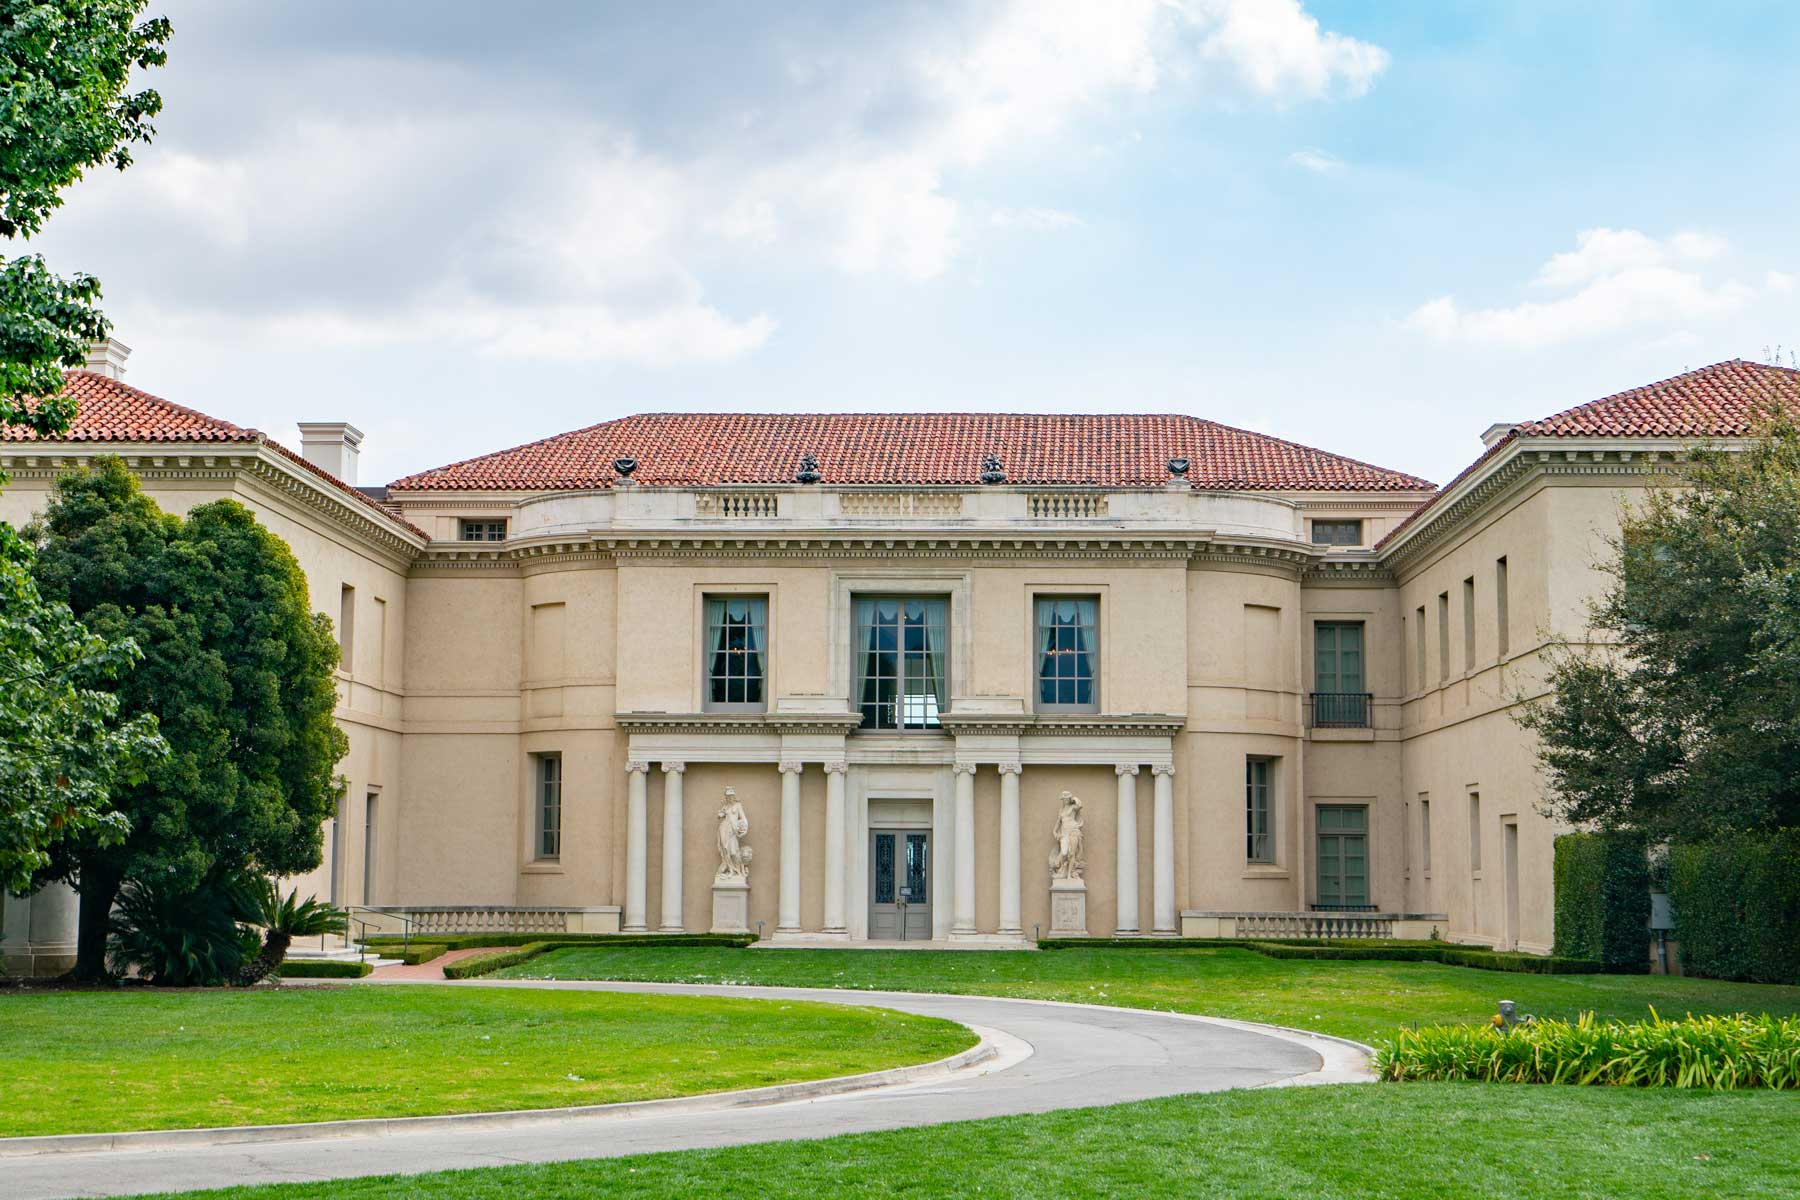 General views of The Huntington Library, Art Museum, and Botanical Gardens on March 08, 2021 in San Marino, California.